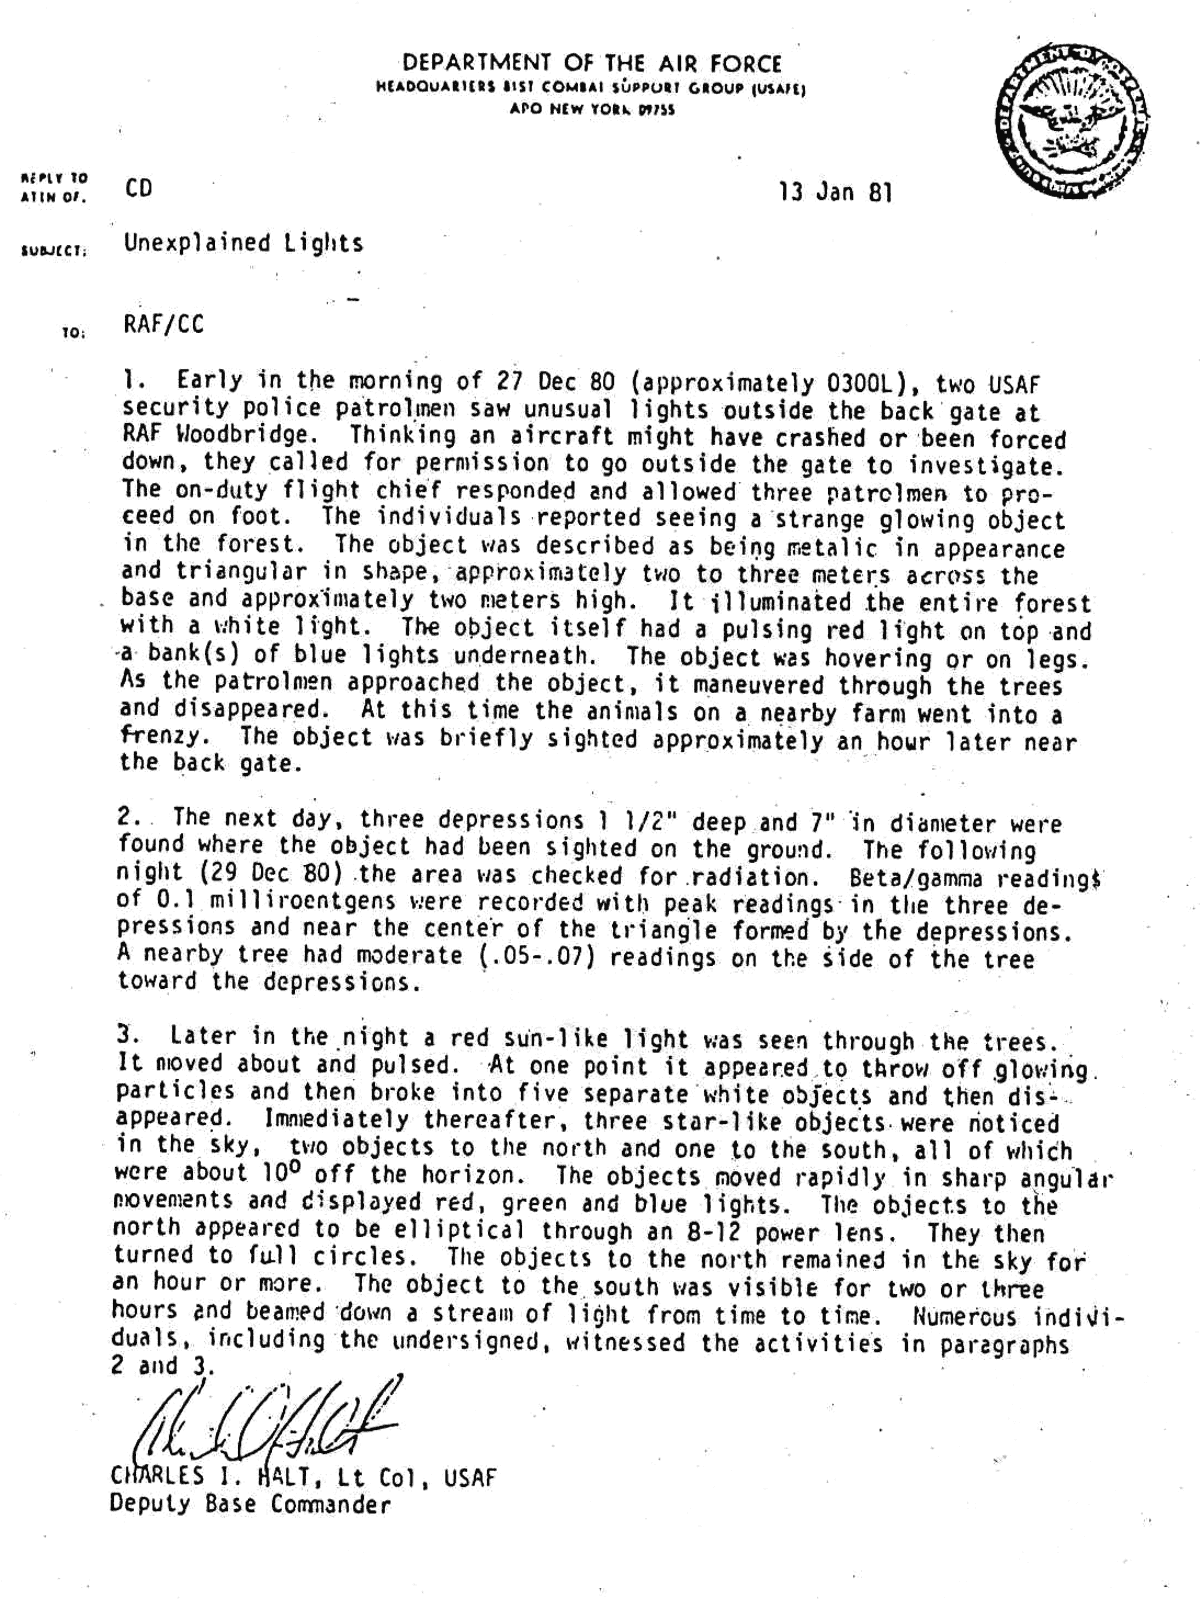 The famous Halt memo details UFO activity at the twin bases